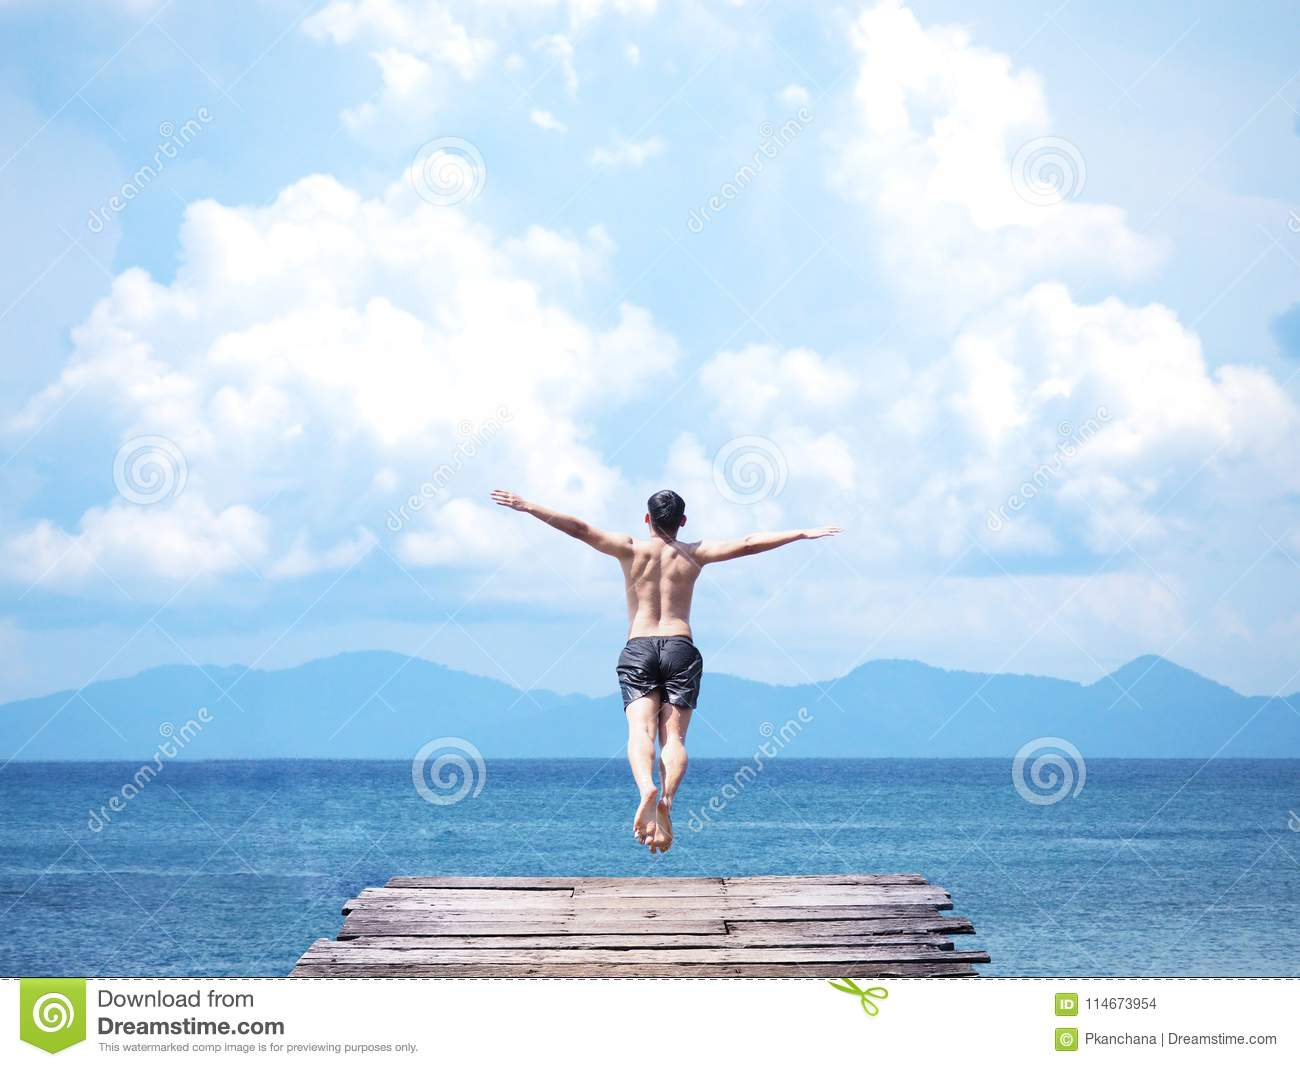 Man Jumping Off Wooden Bridge Into Blue Sea  Stock Photo - Image of